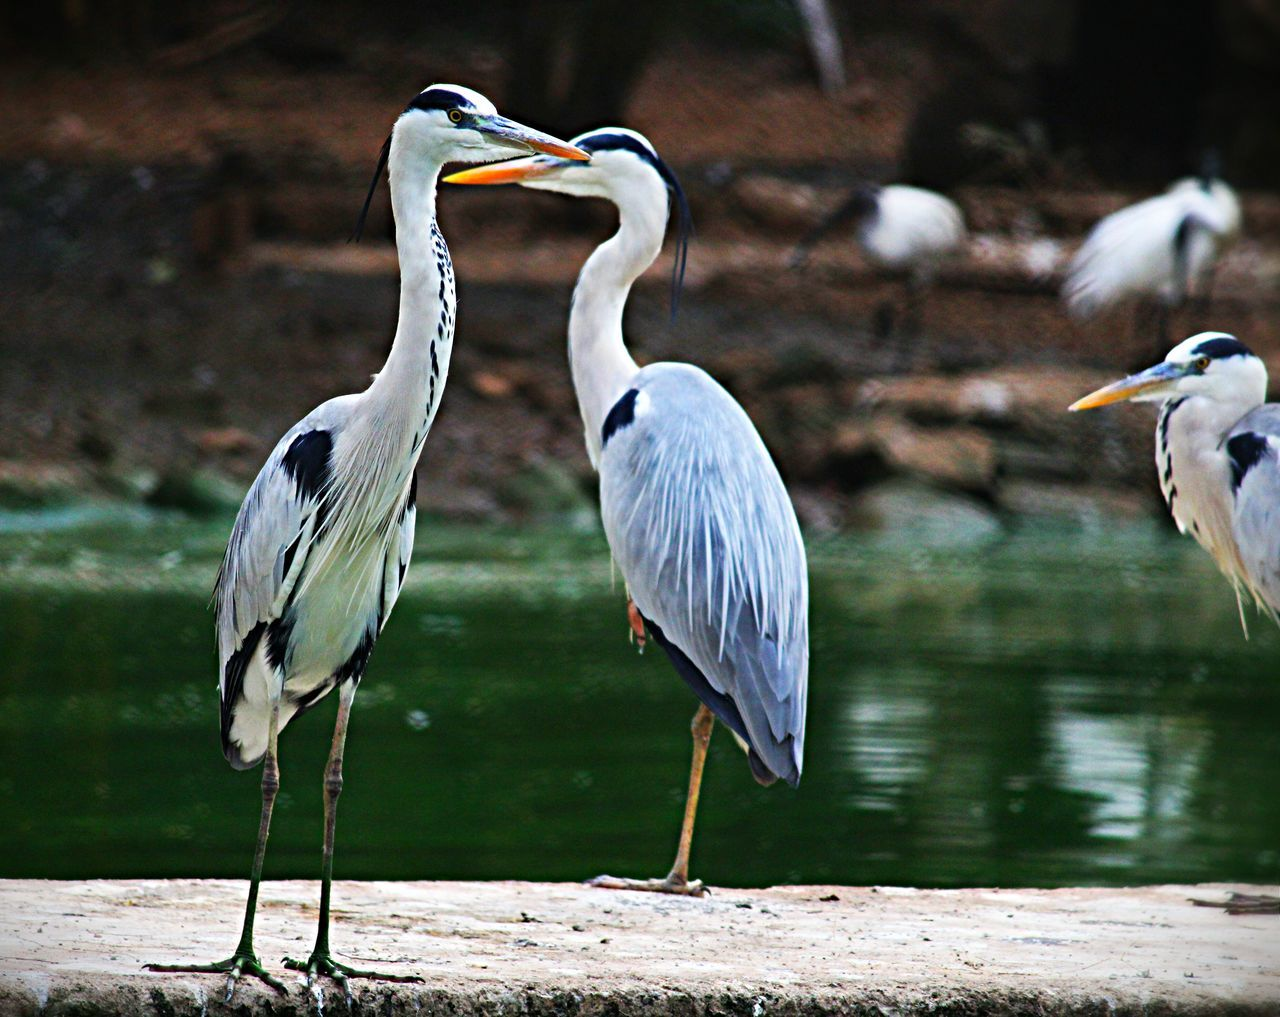 bird, animal themes, animals in the wild, heron, animal wildlife, nature, day, gray heron, focus on foreground, no people, beauty in nature, outdoors, water, crane - bird, perching, close-up